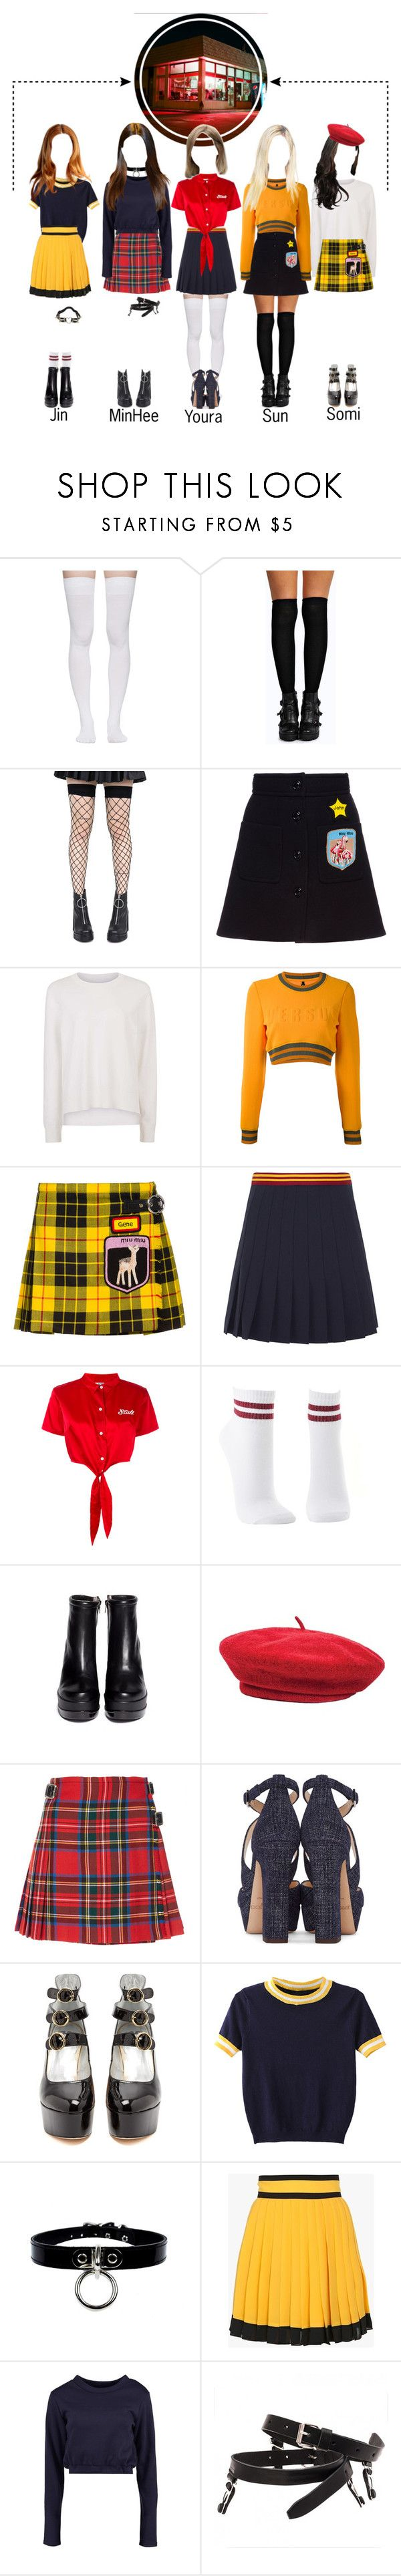 """GIRLSQUAD - ' 어머나 (OOPS)' M/V 